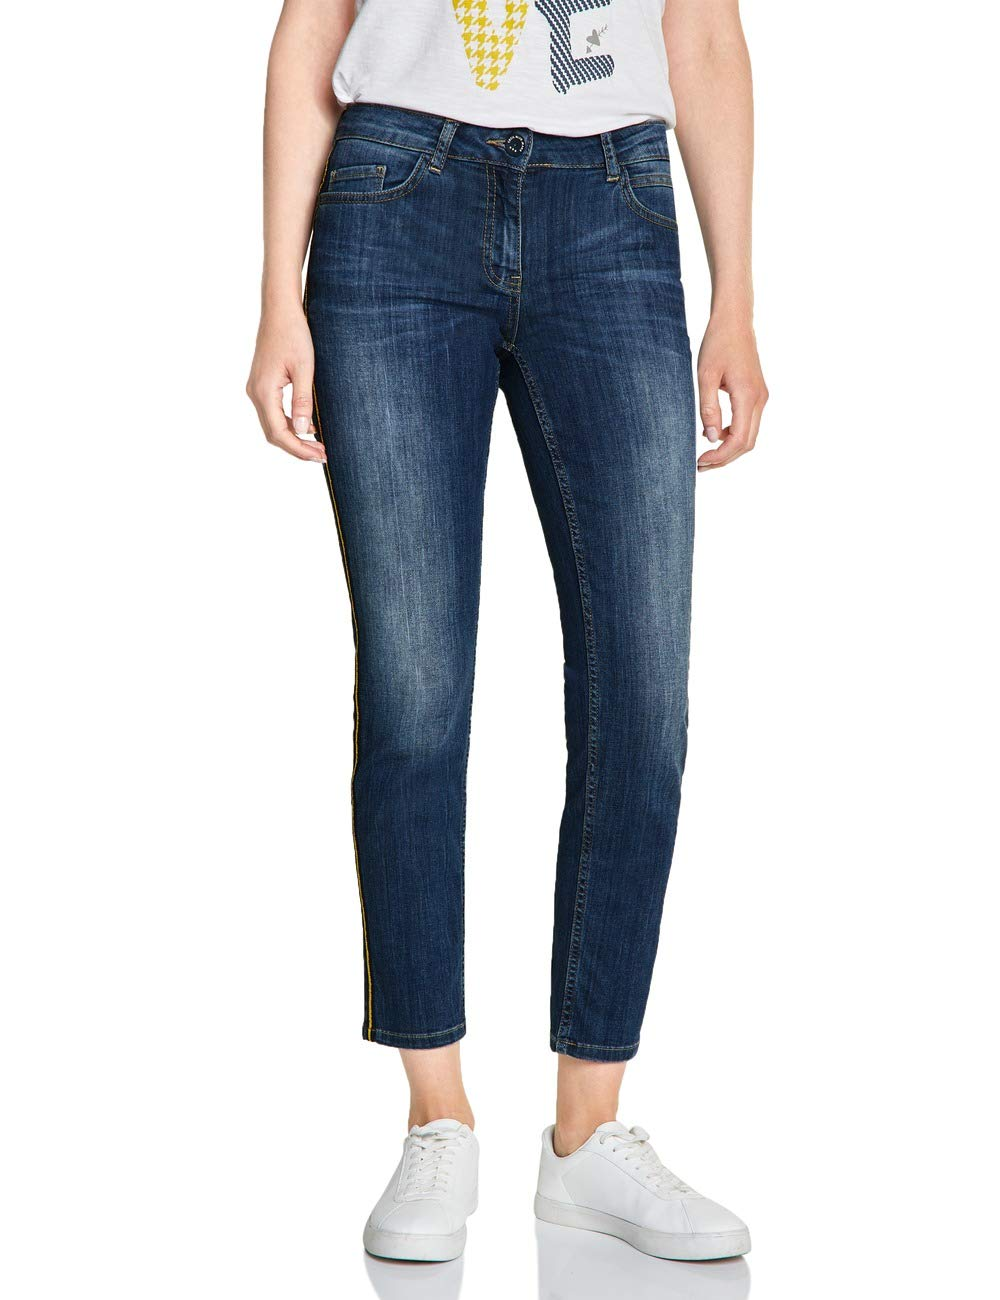 SlimMulticoloreauthentic 372454 1030144l28taille Blue Cecil Tight Jean Charlize Mid Fit Fabricant34Femme Wash VSzqMUpG